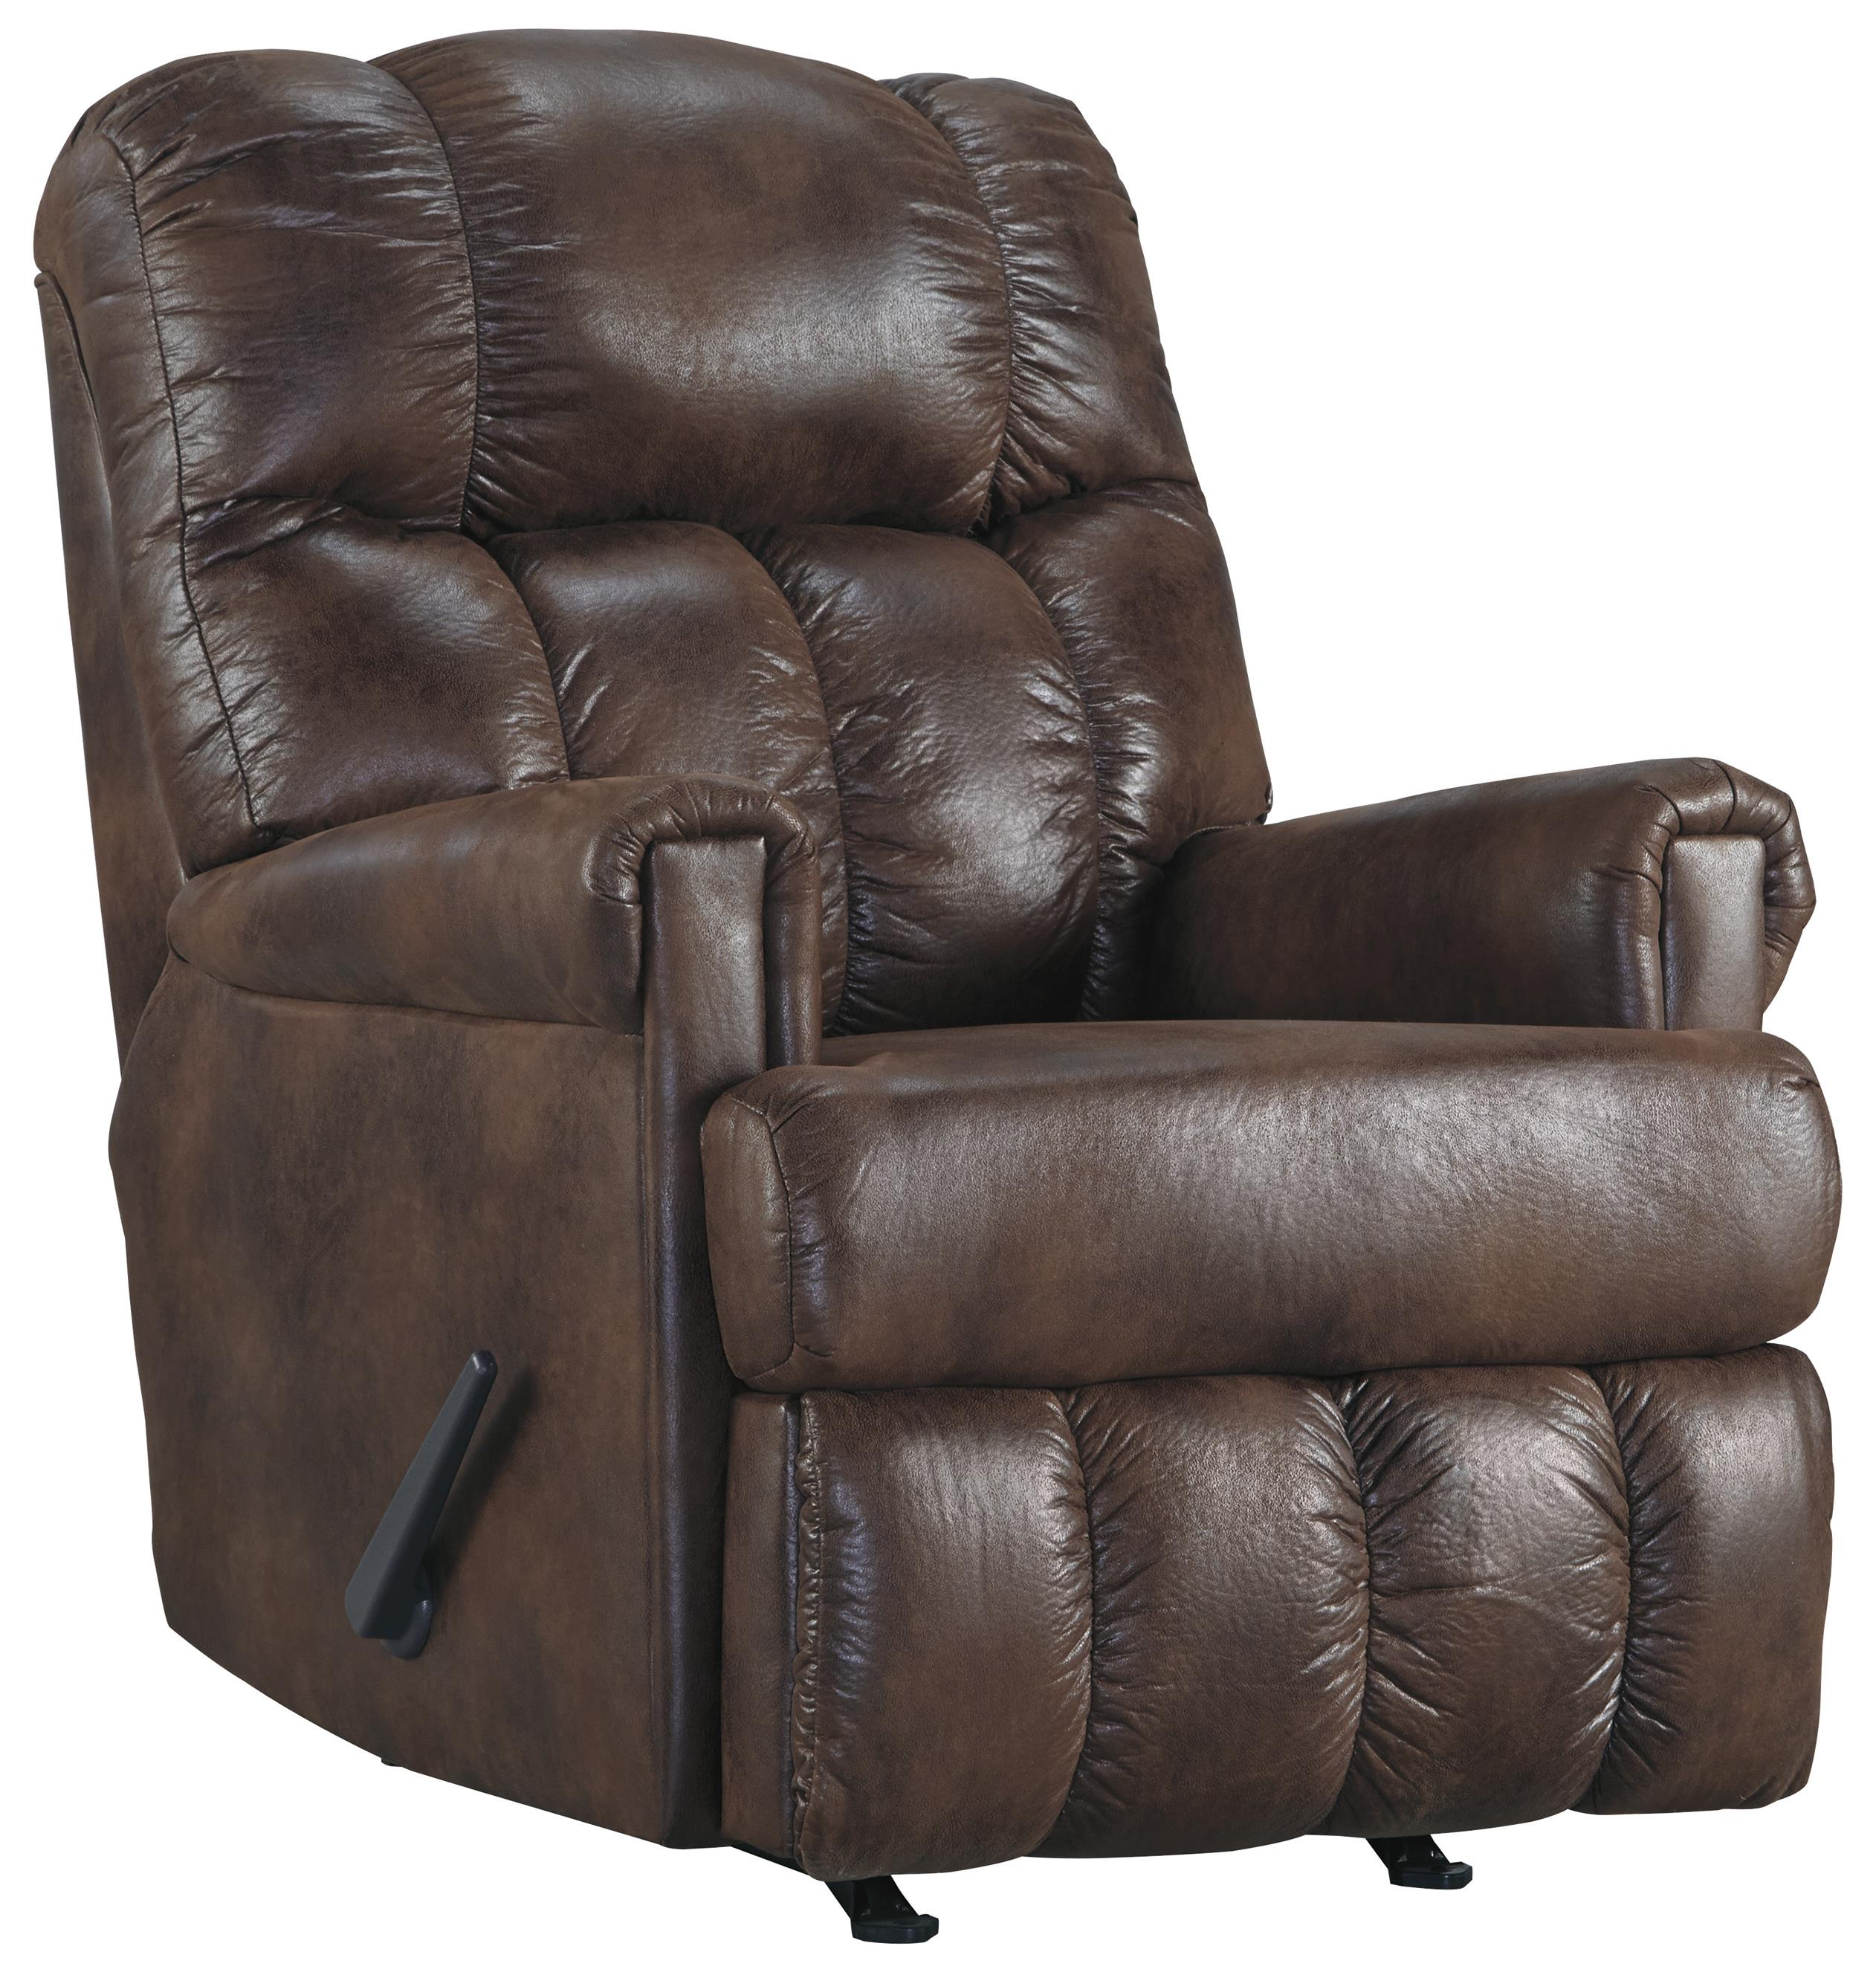 Signature Design by Ashley Chipster Rocker Recliner - Item Number: 4750125